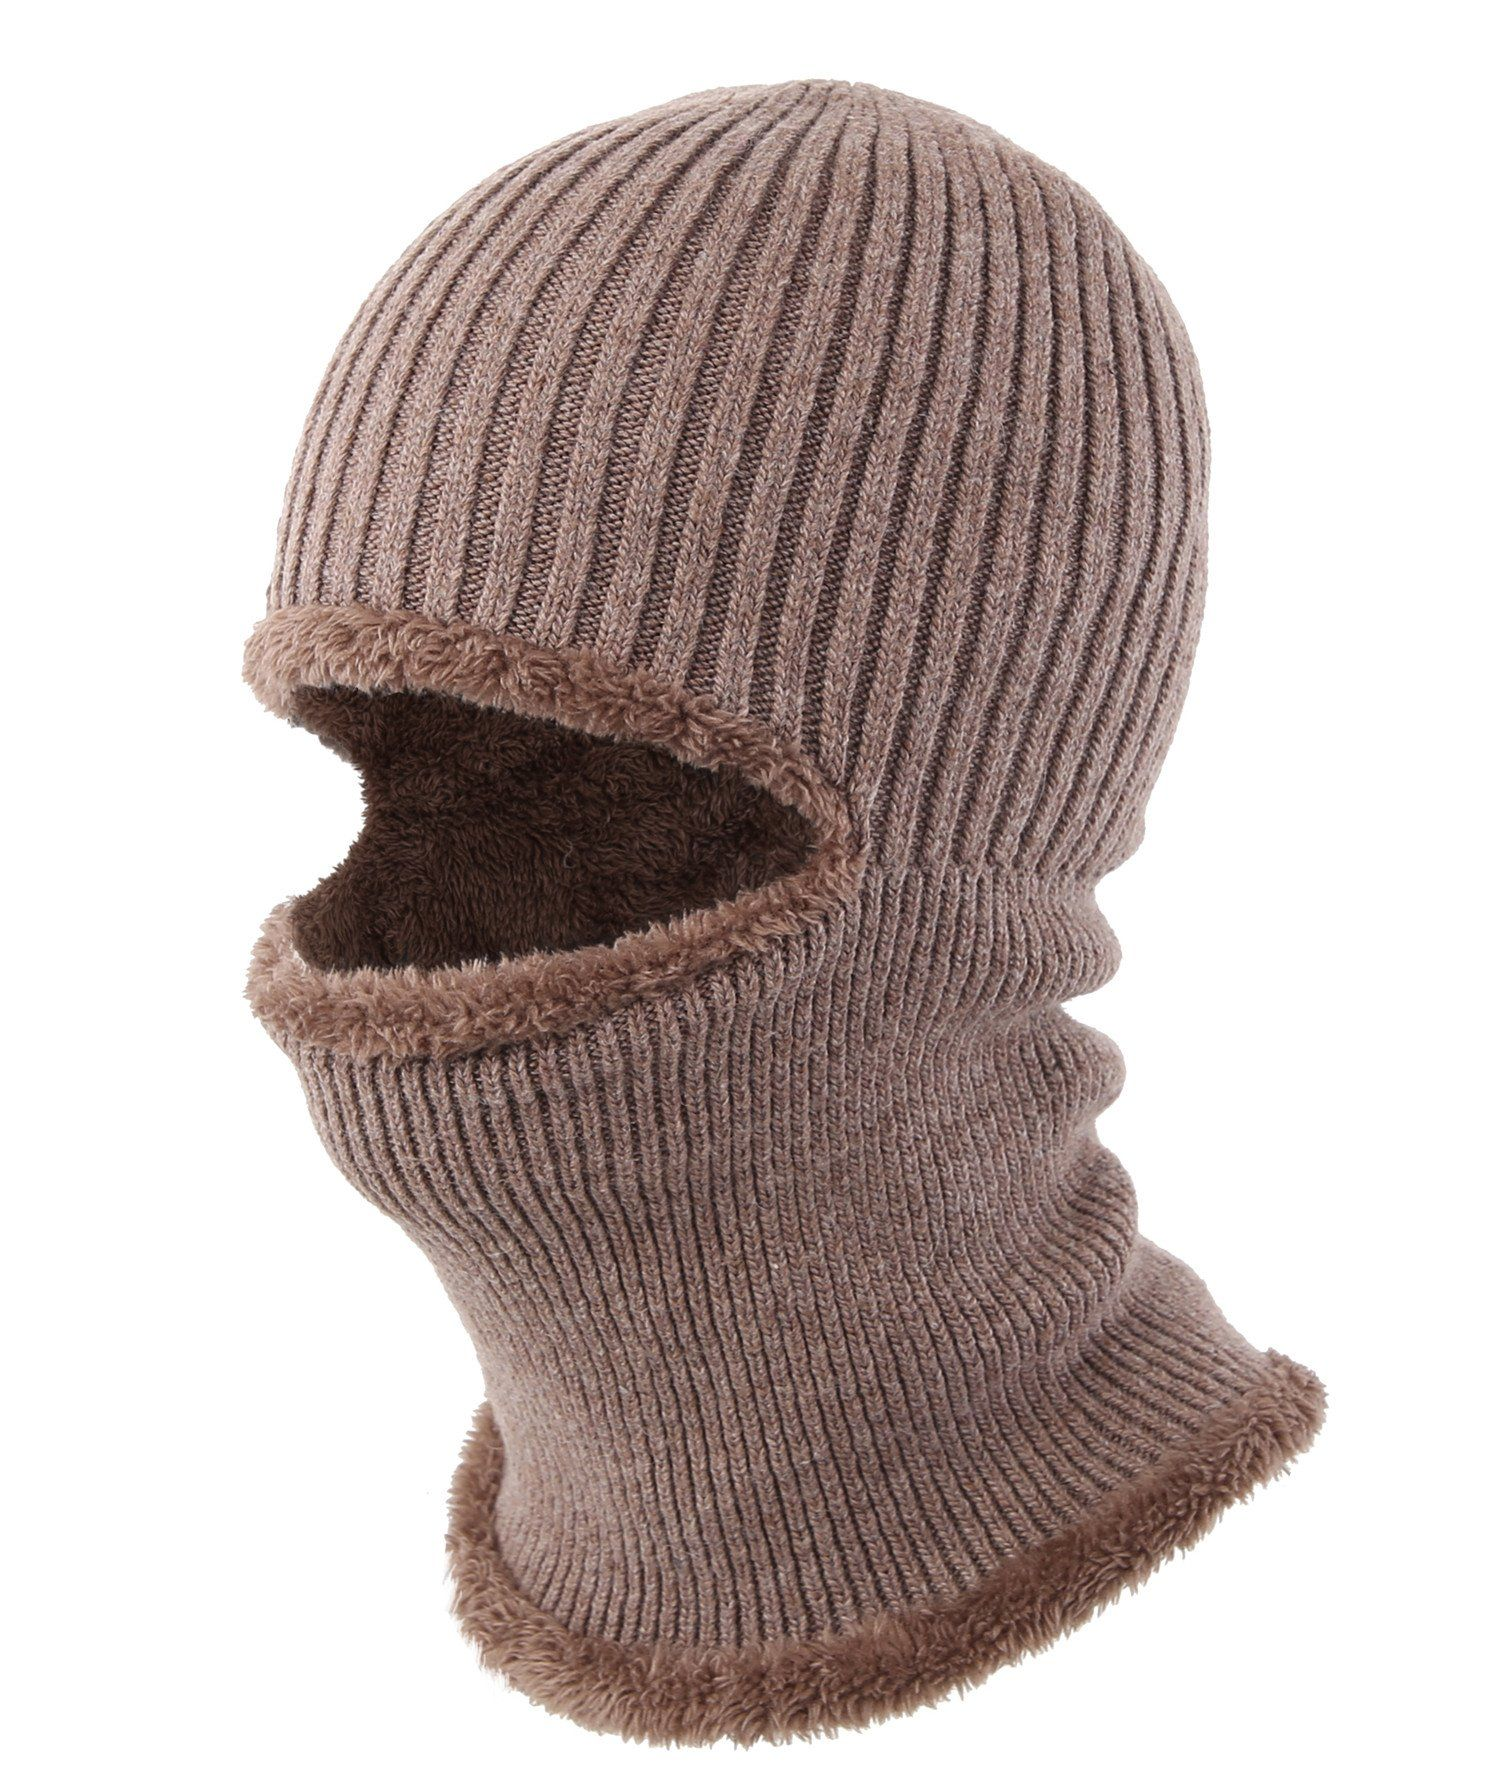 22833ccd38592 Connectyle Windproof Ski Face Mask Winter Hats Warm Knitted Balaclava Beanie  Hat (Khaki).